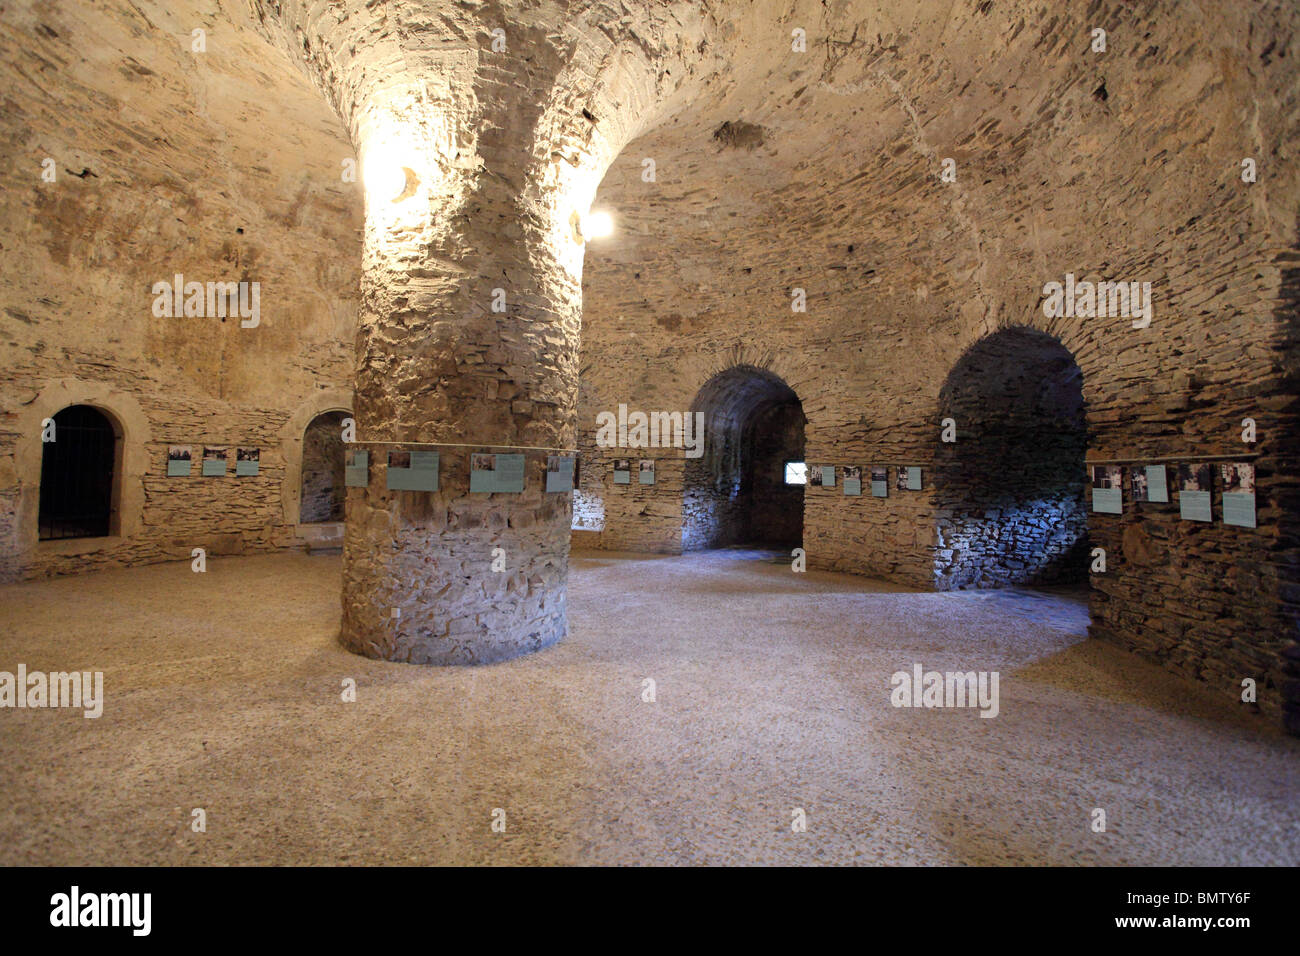 The stone cellar at the medieval castle Cerveny Kamen Slovakia. & The stone cellar at the medieval castle Cerveny Kamen Slovakia ...